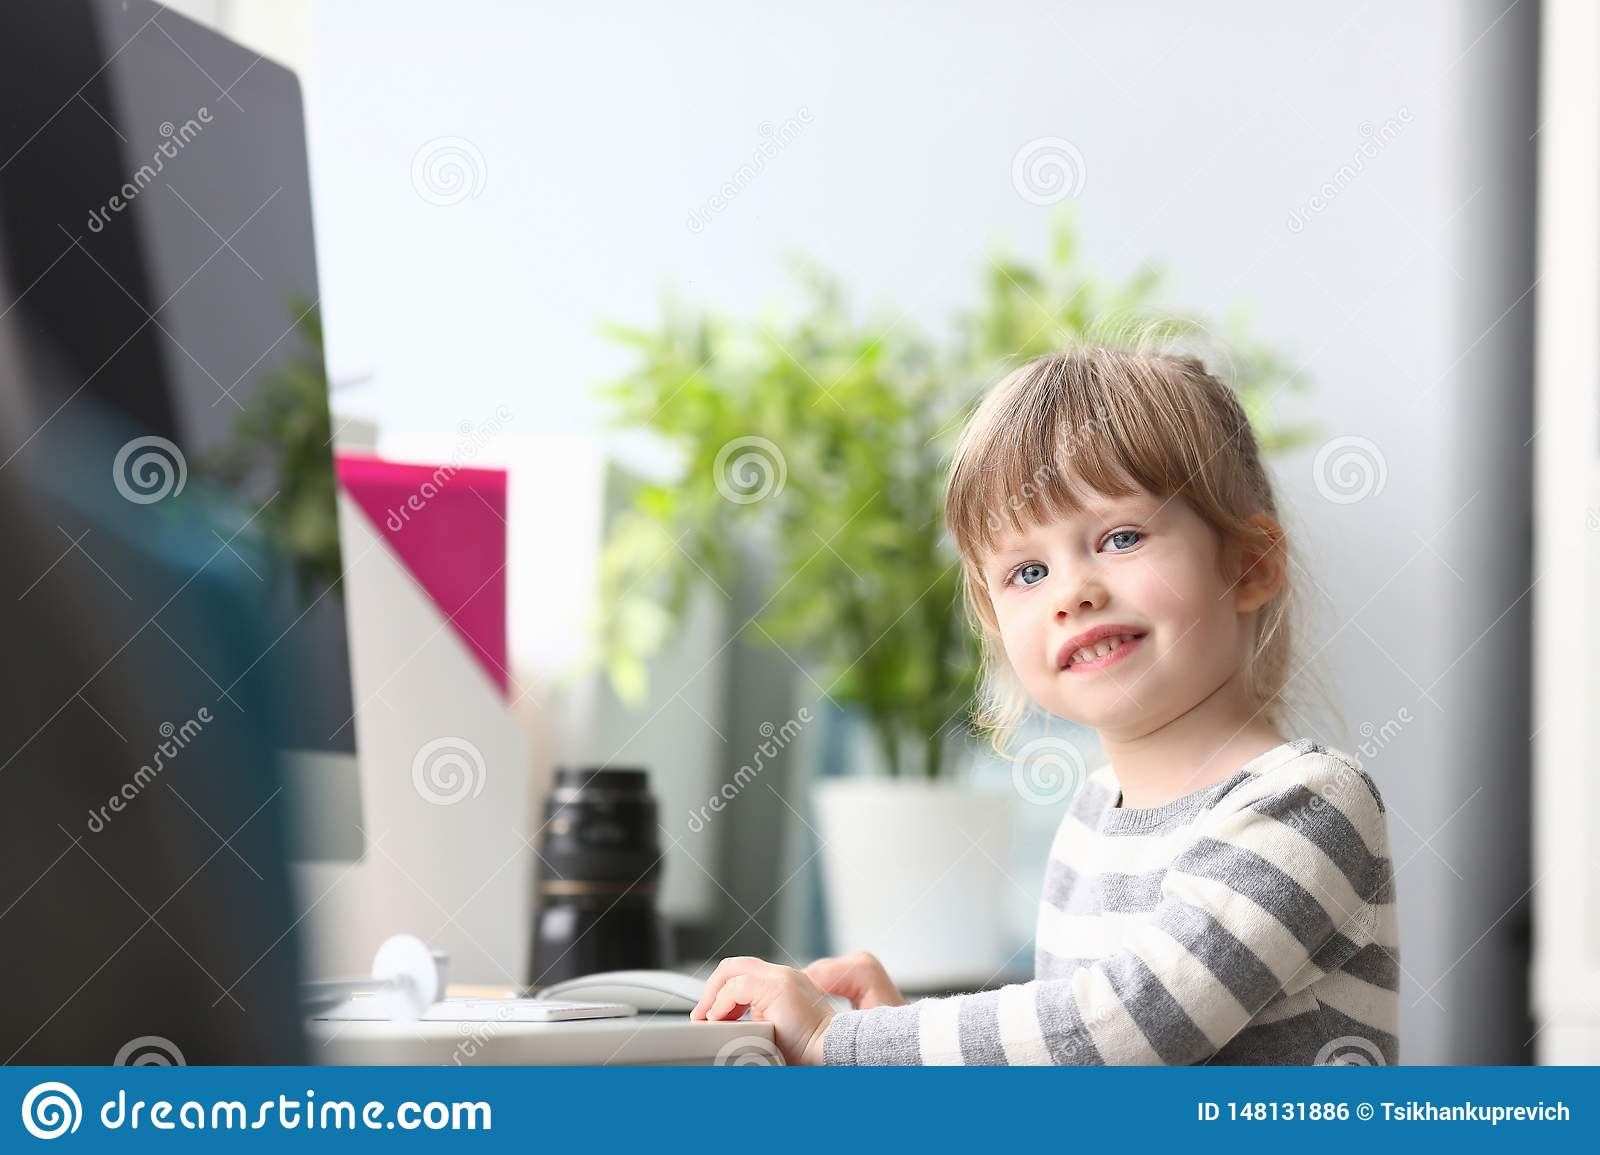 Cute little girl sitting at home at worktable looking in camera